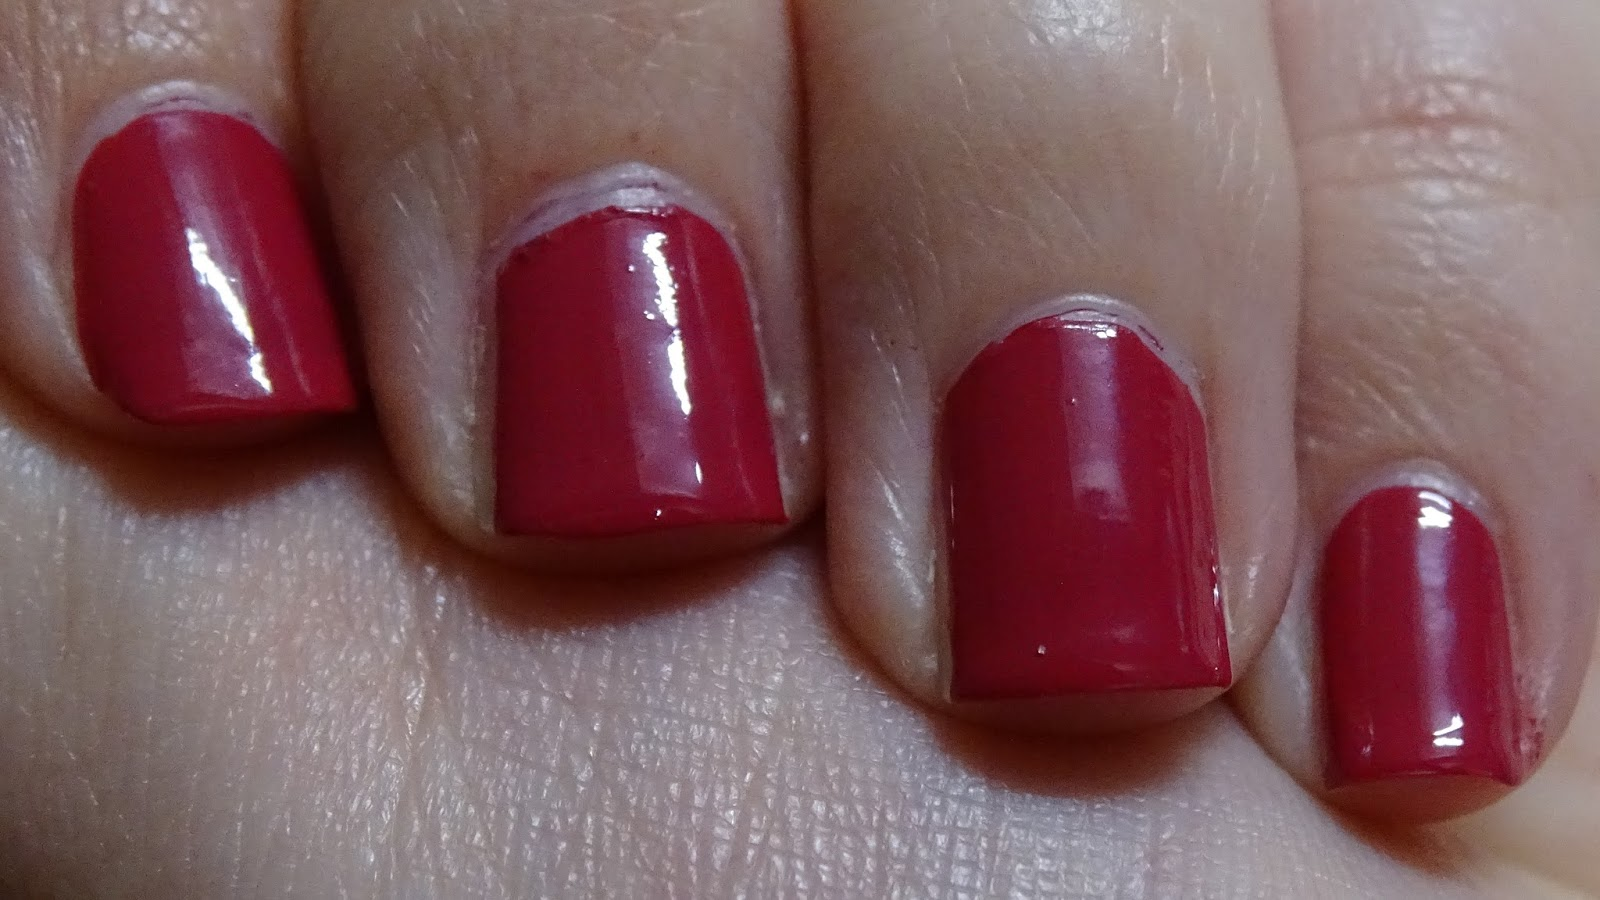 Das Mini bloggt: [Nagellack] Catrice 108 The Very Berry Best